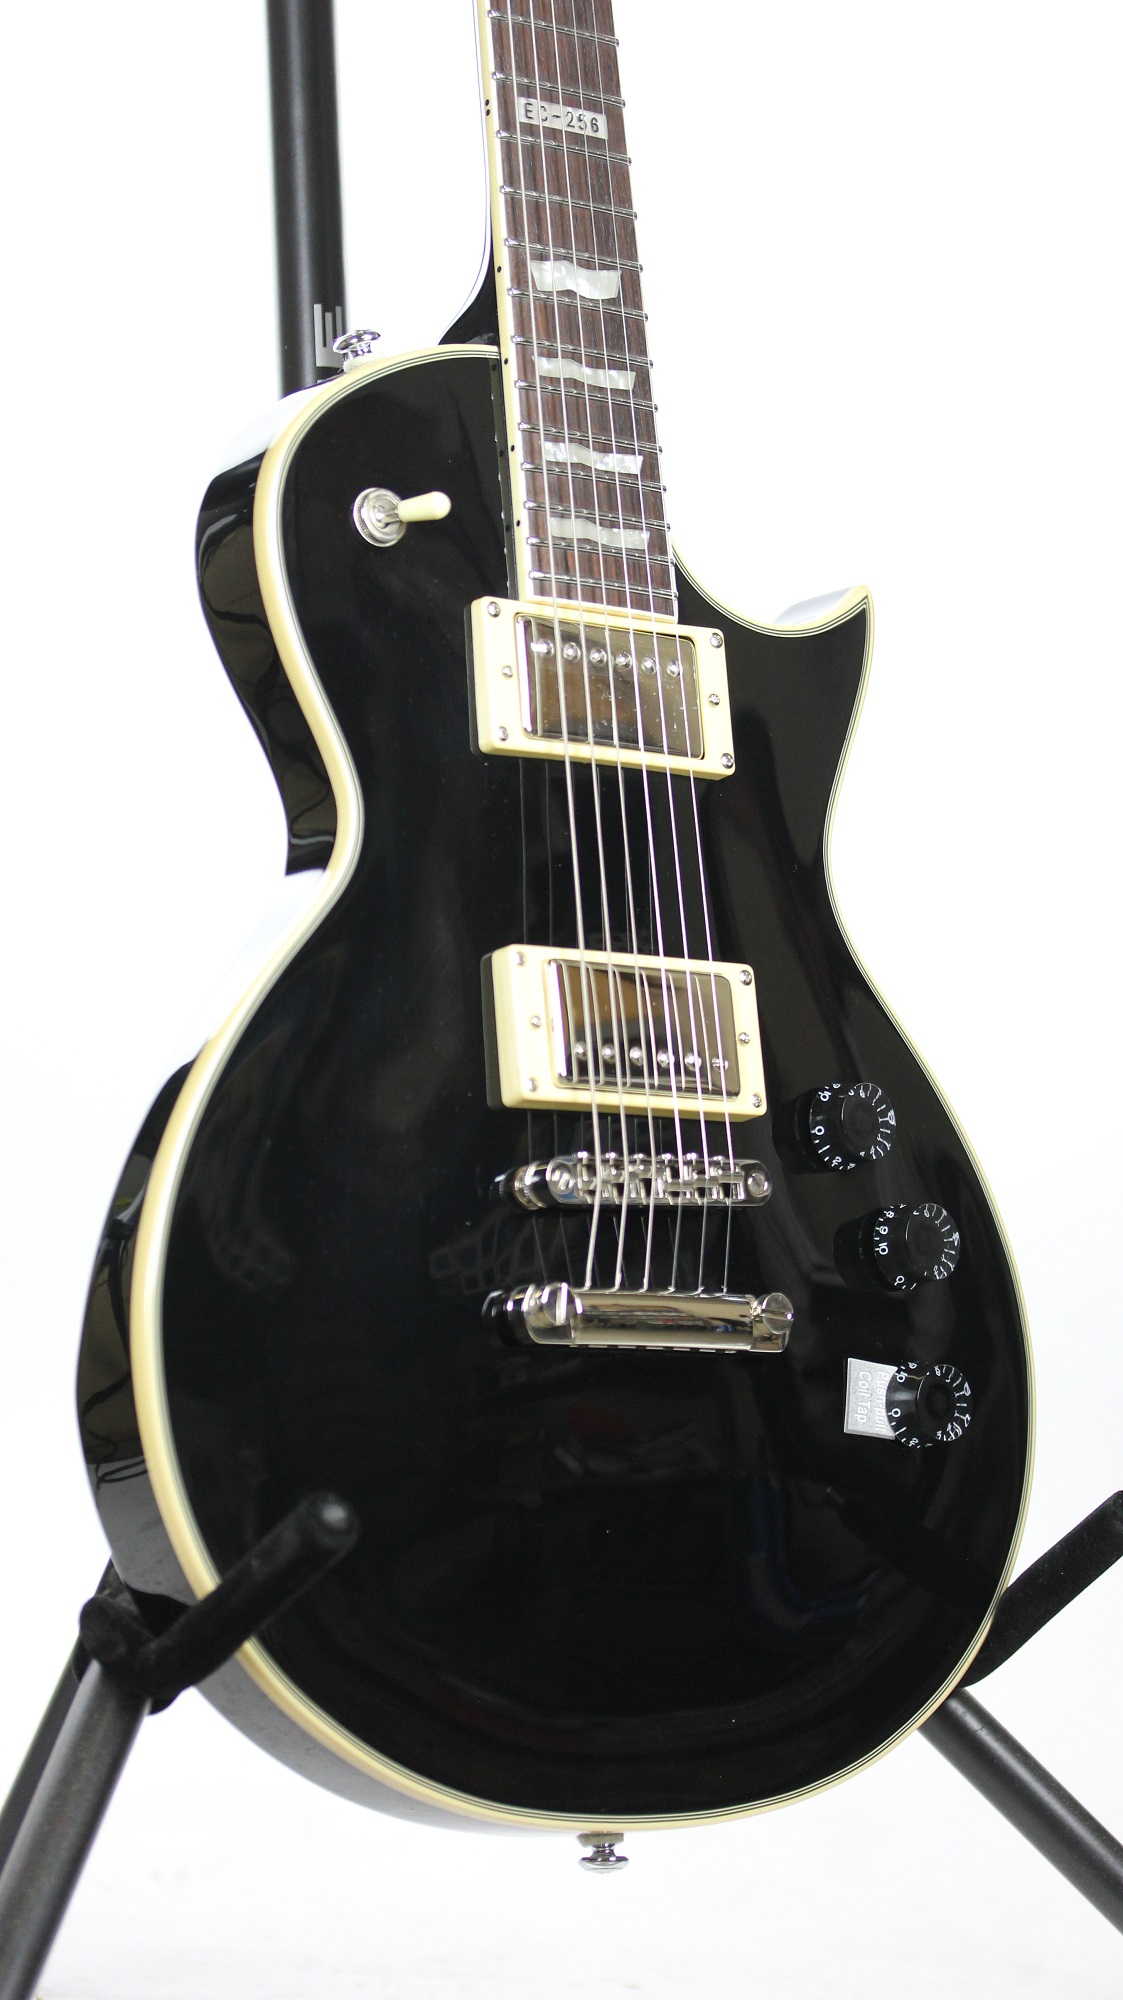 esp ltd ec 256 black sample prototype electric guitar 6. Black Bedroom Furniture Sets. Home Design Ideas